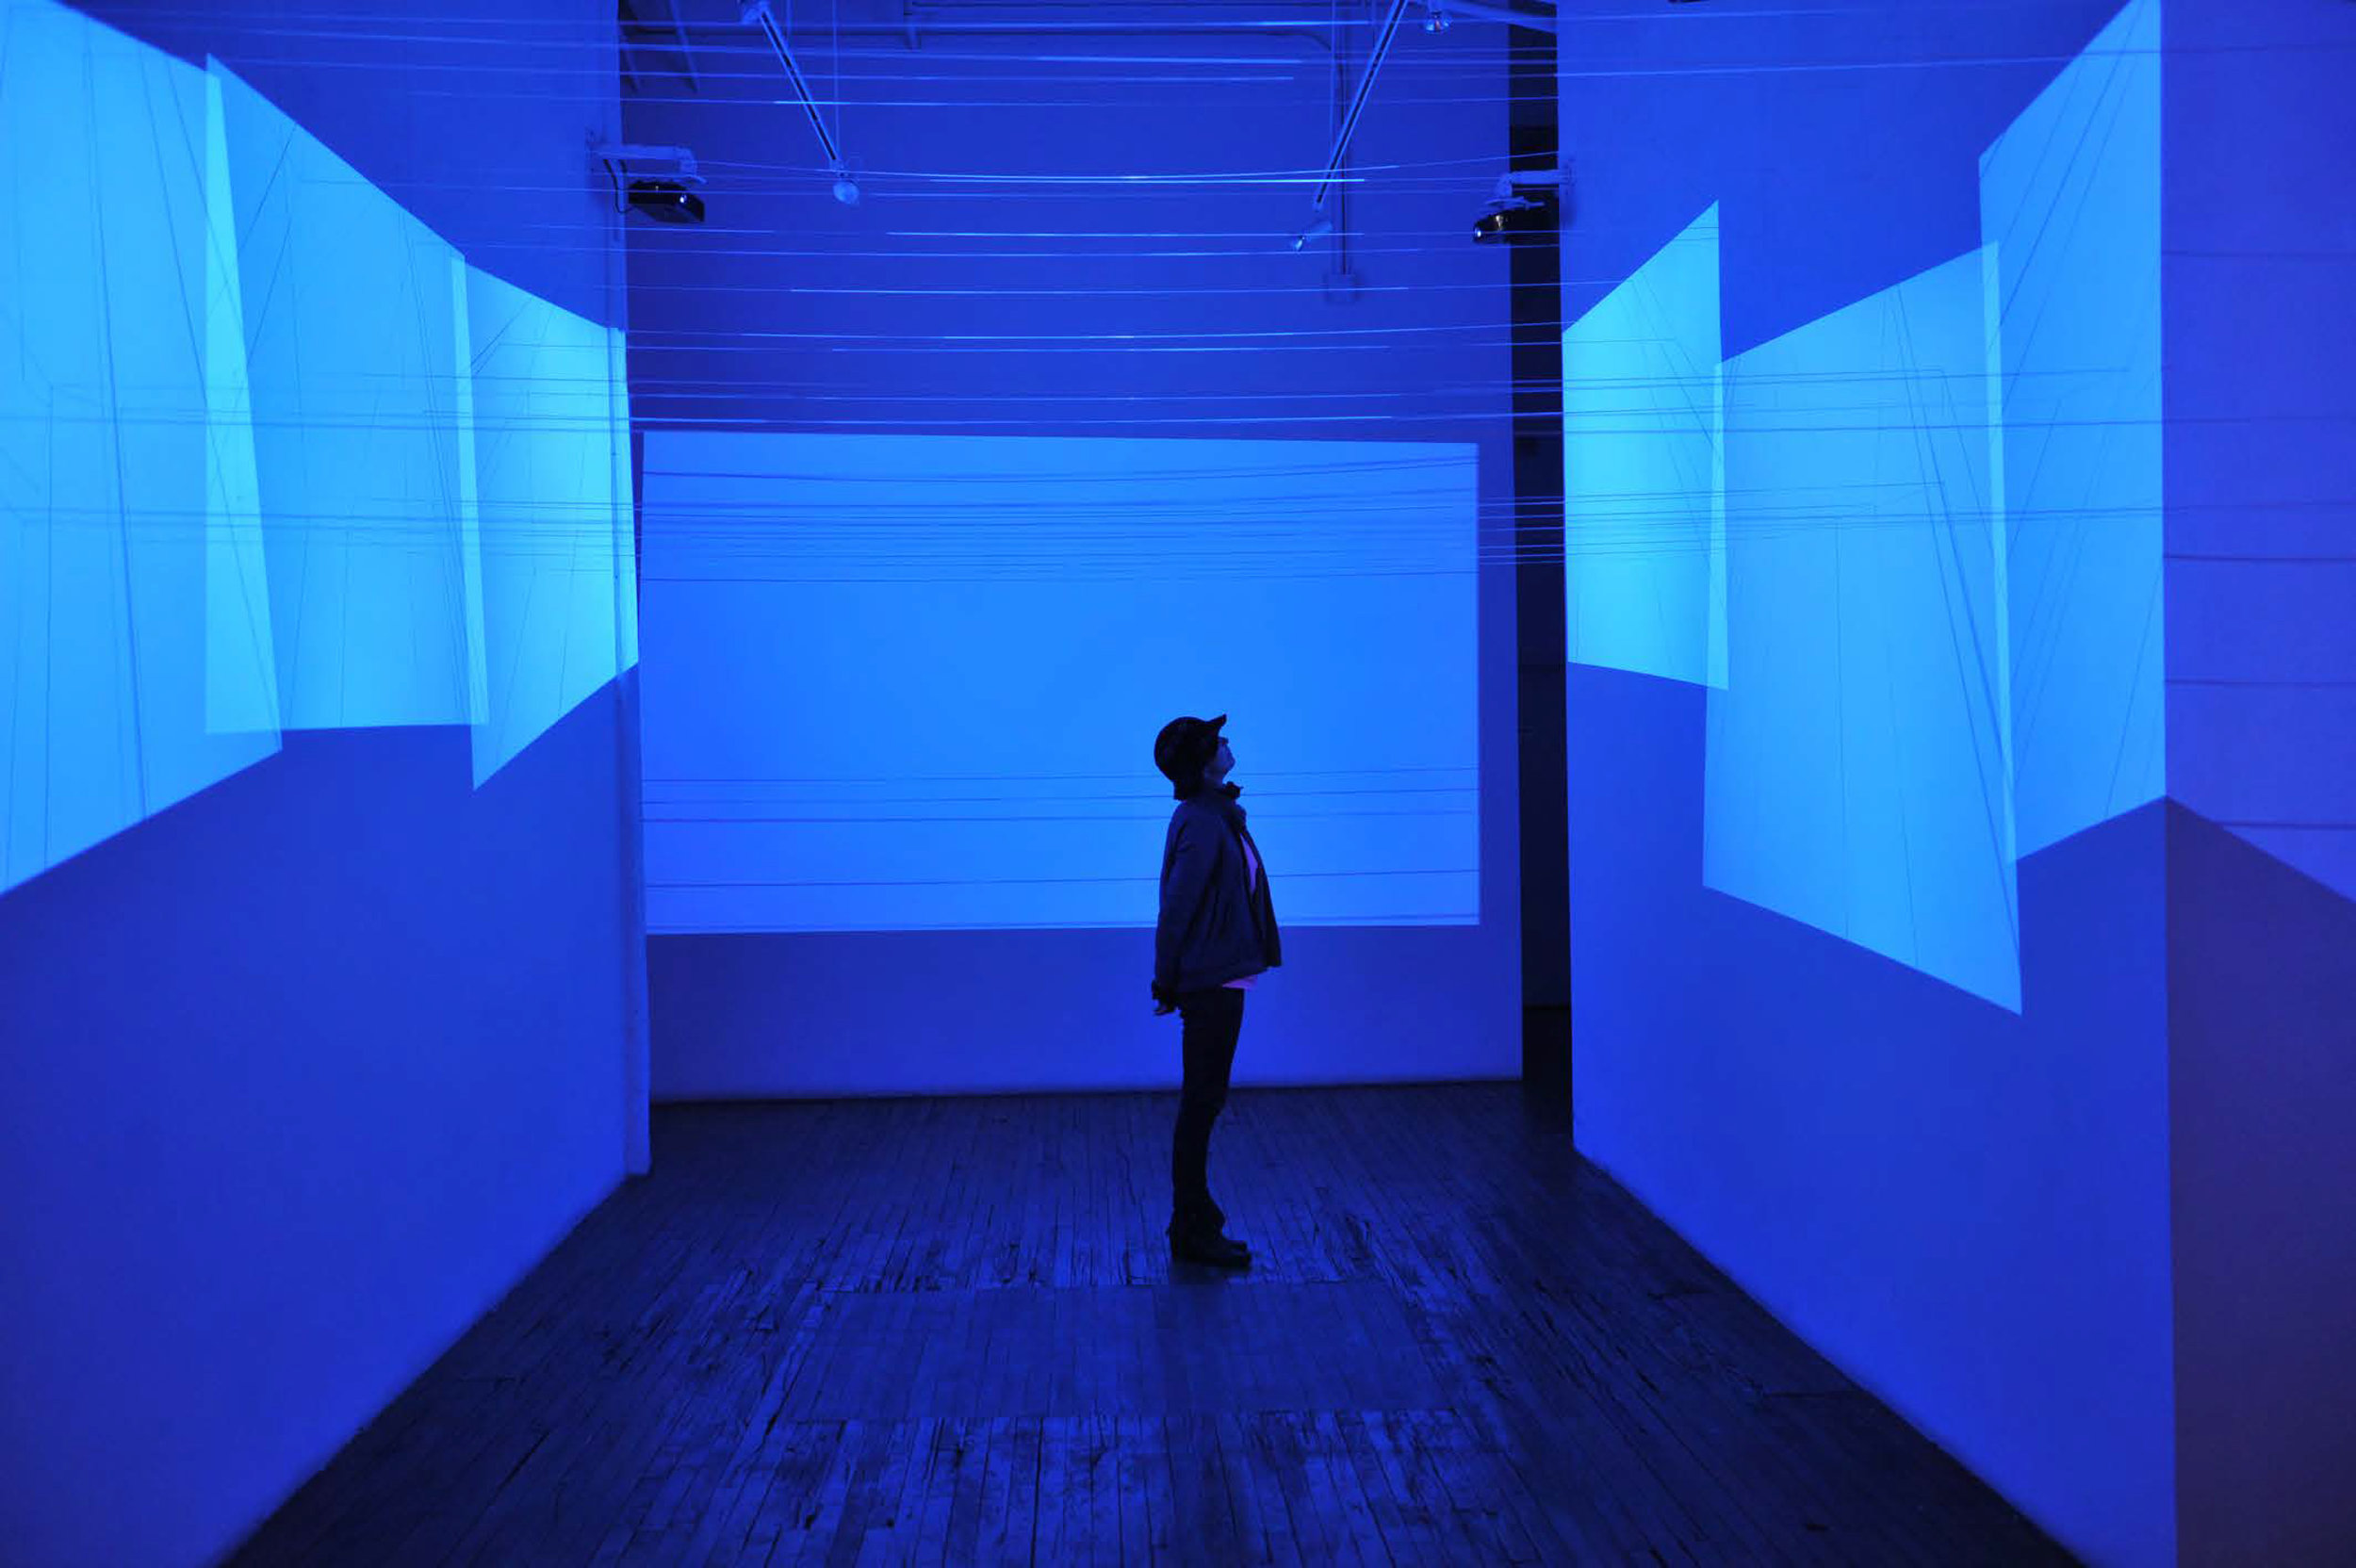 A Cielo Aperto #1,  2014 ,  Site specific 7 channels installation + plastic strings on walls, variable dimensions, ISCP, Brooklyn, NY